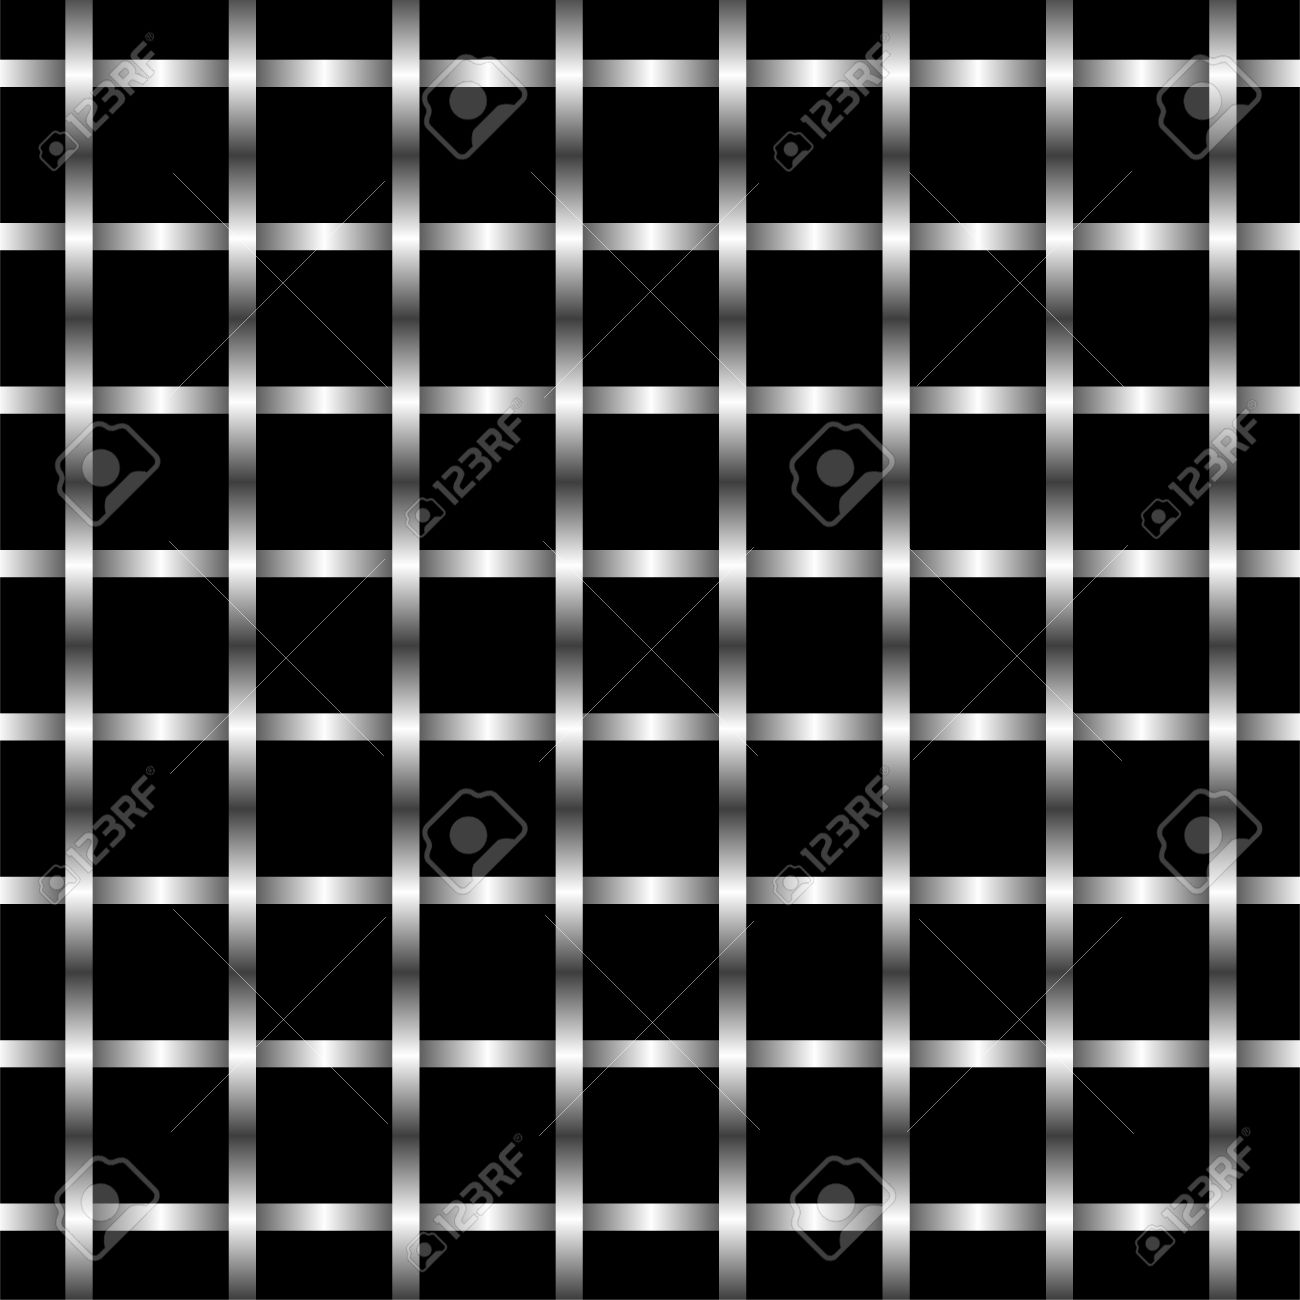 Metal Grid Wall abstract illustration of metal grid wall pattern. royalty free